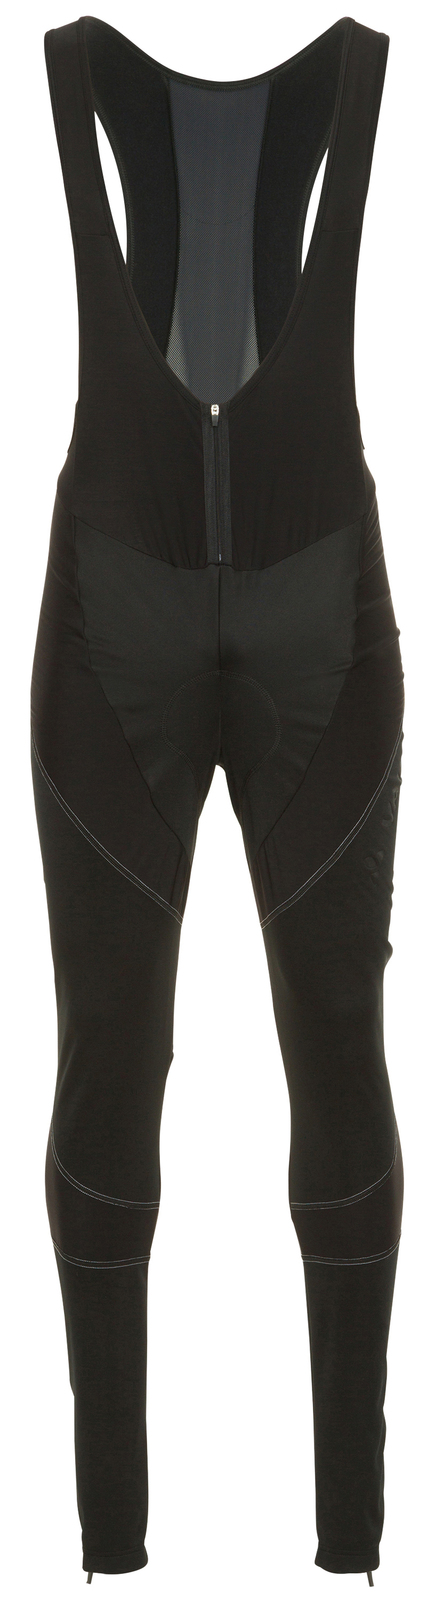 VAUDE Men´s Pro Warm Pants black Größe L - schneider-sports